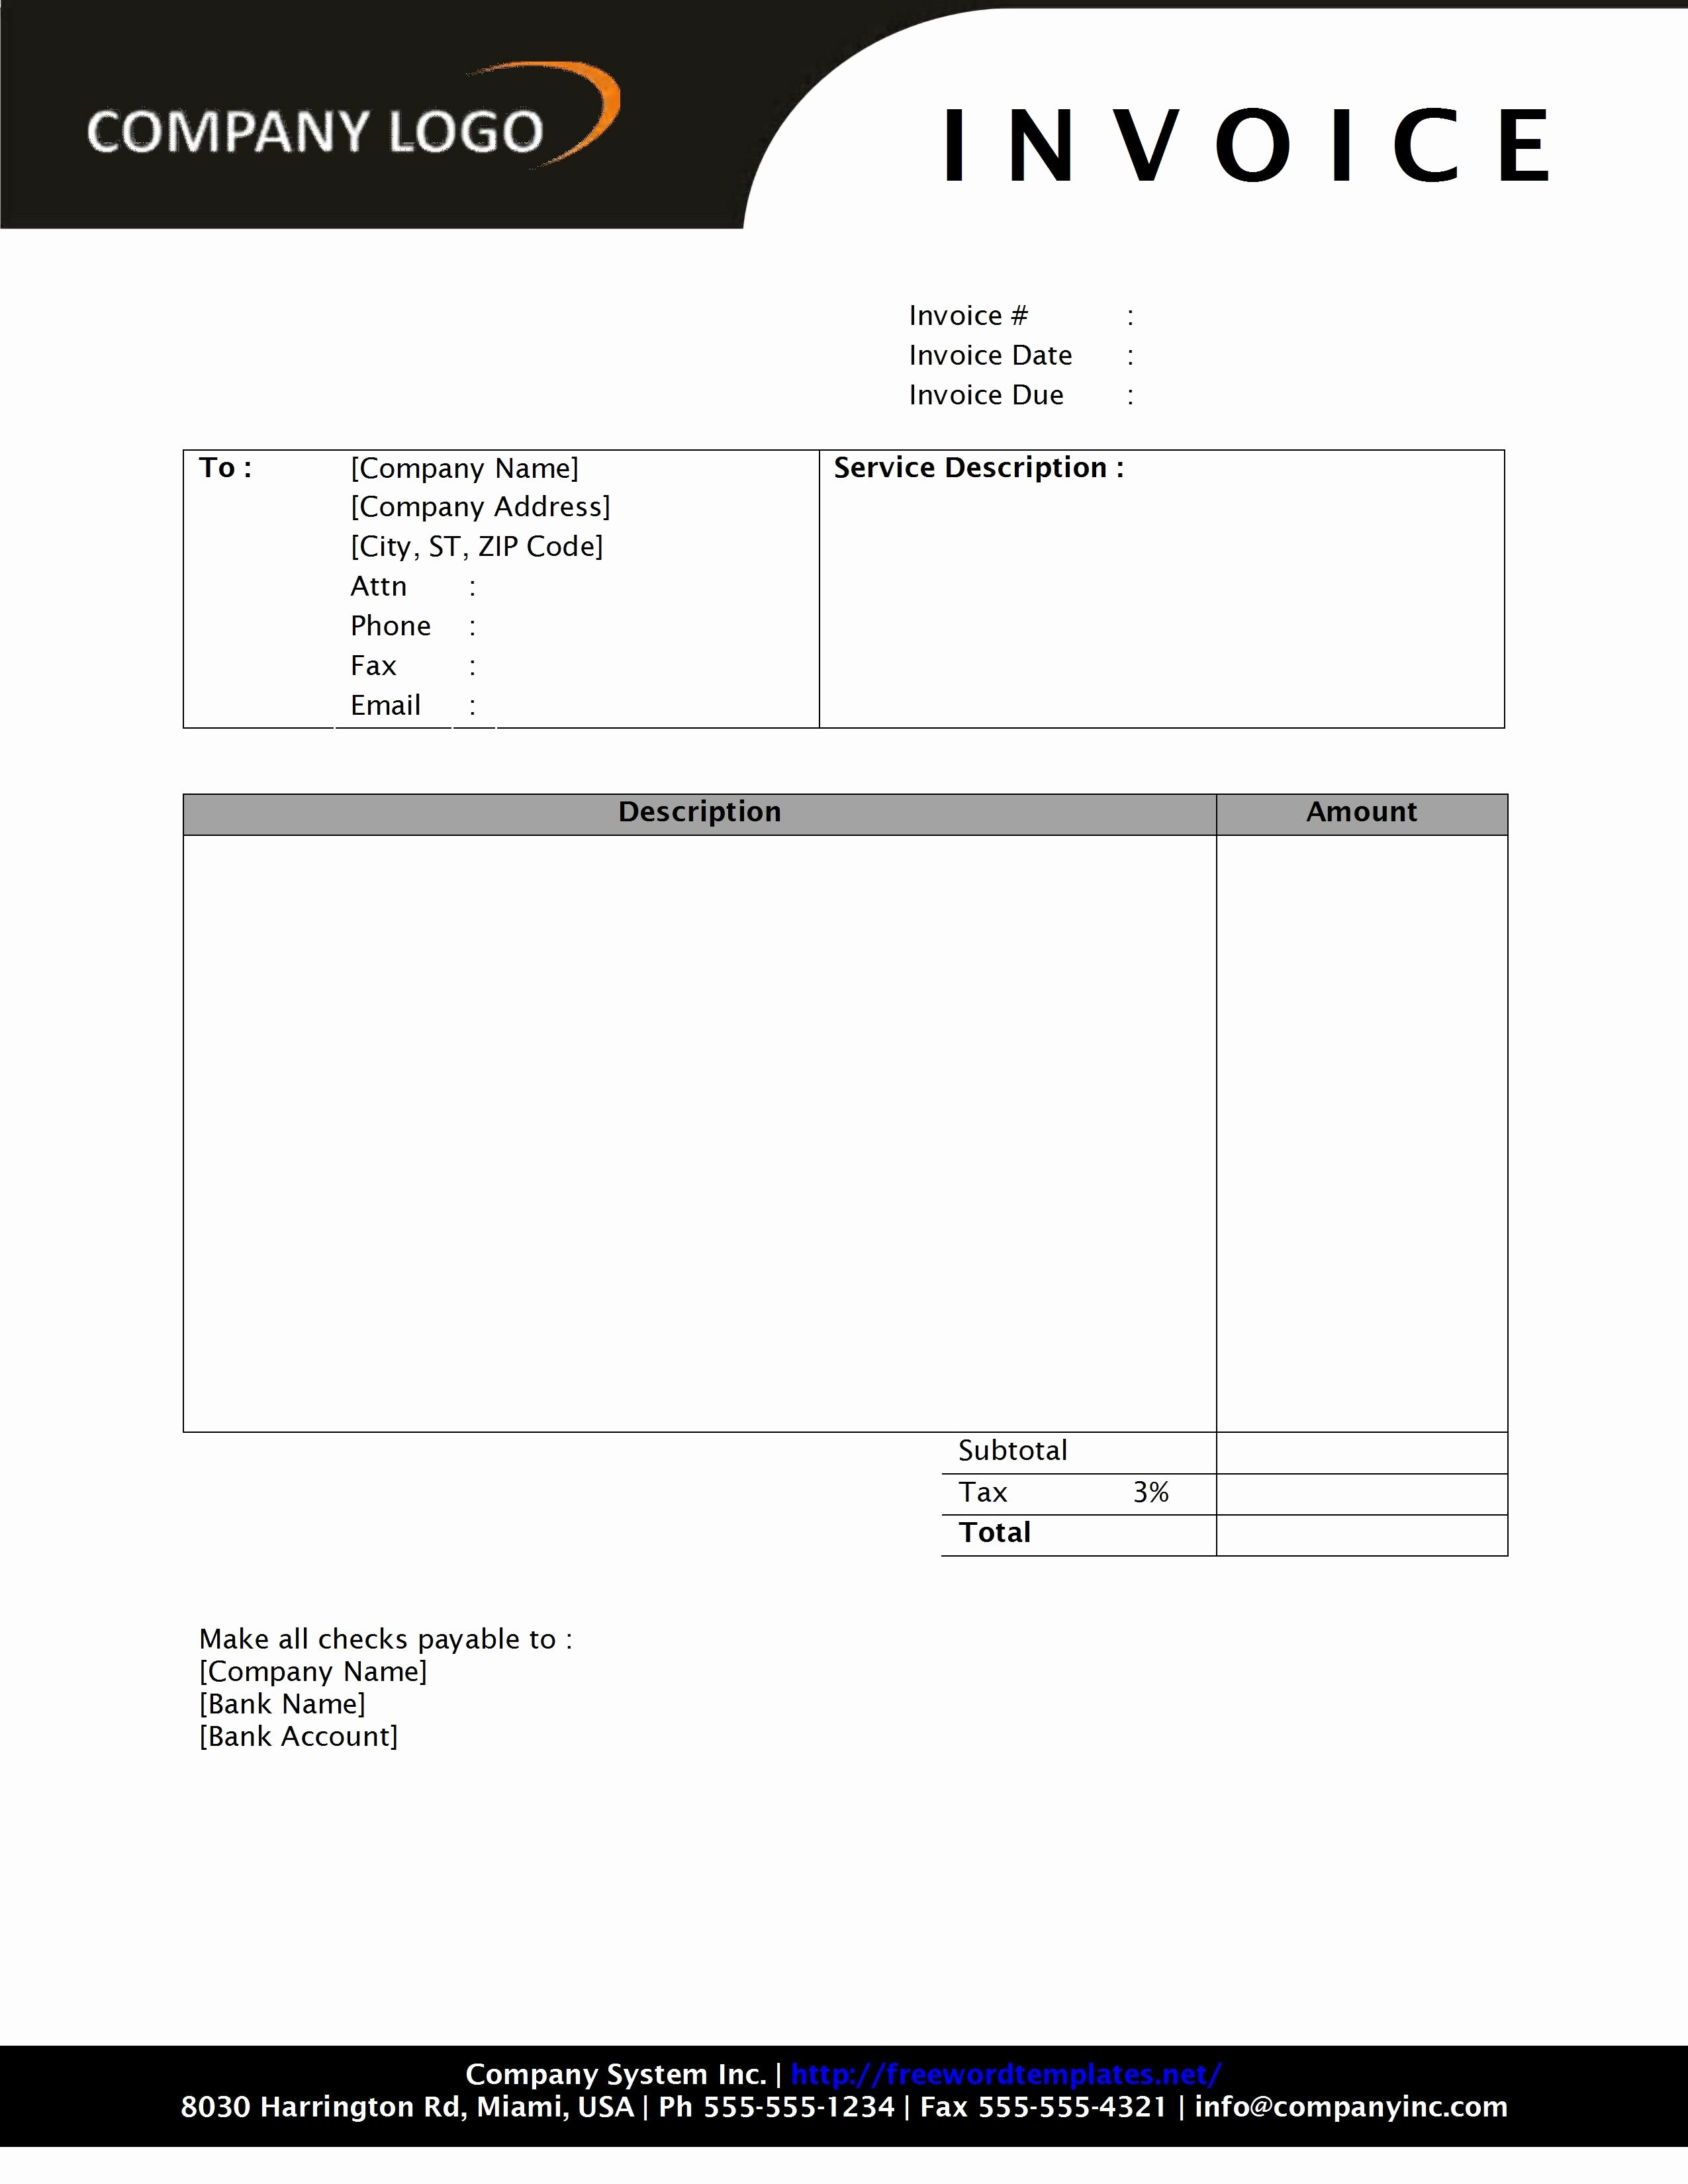 Free Sales Invoice Template Elegant Invoice Template Word 2010